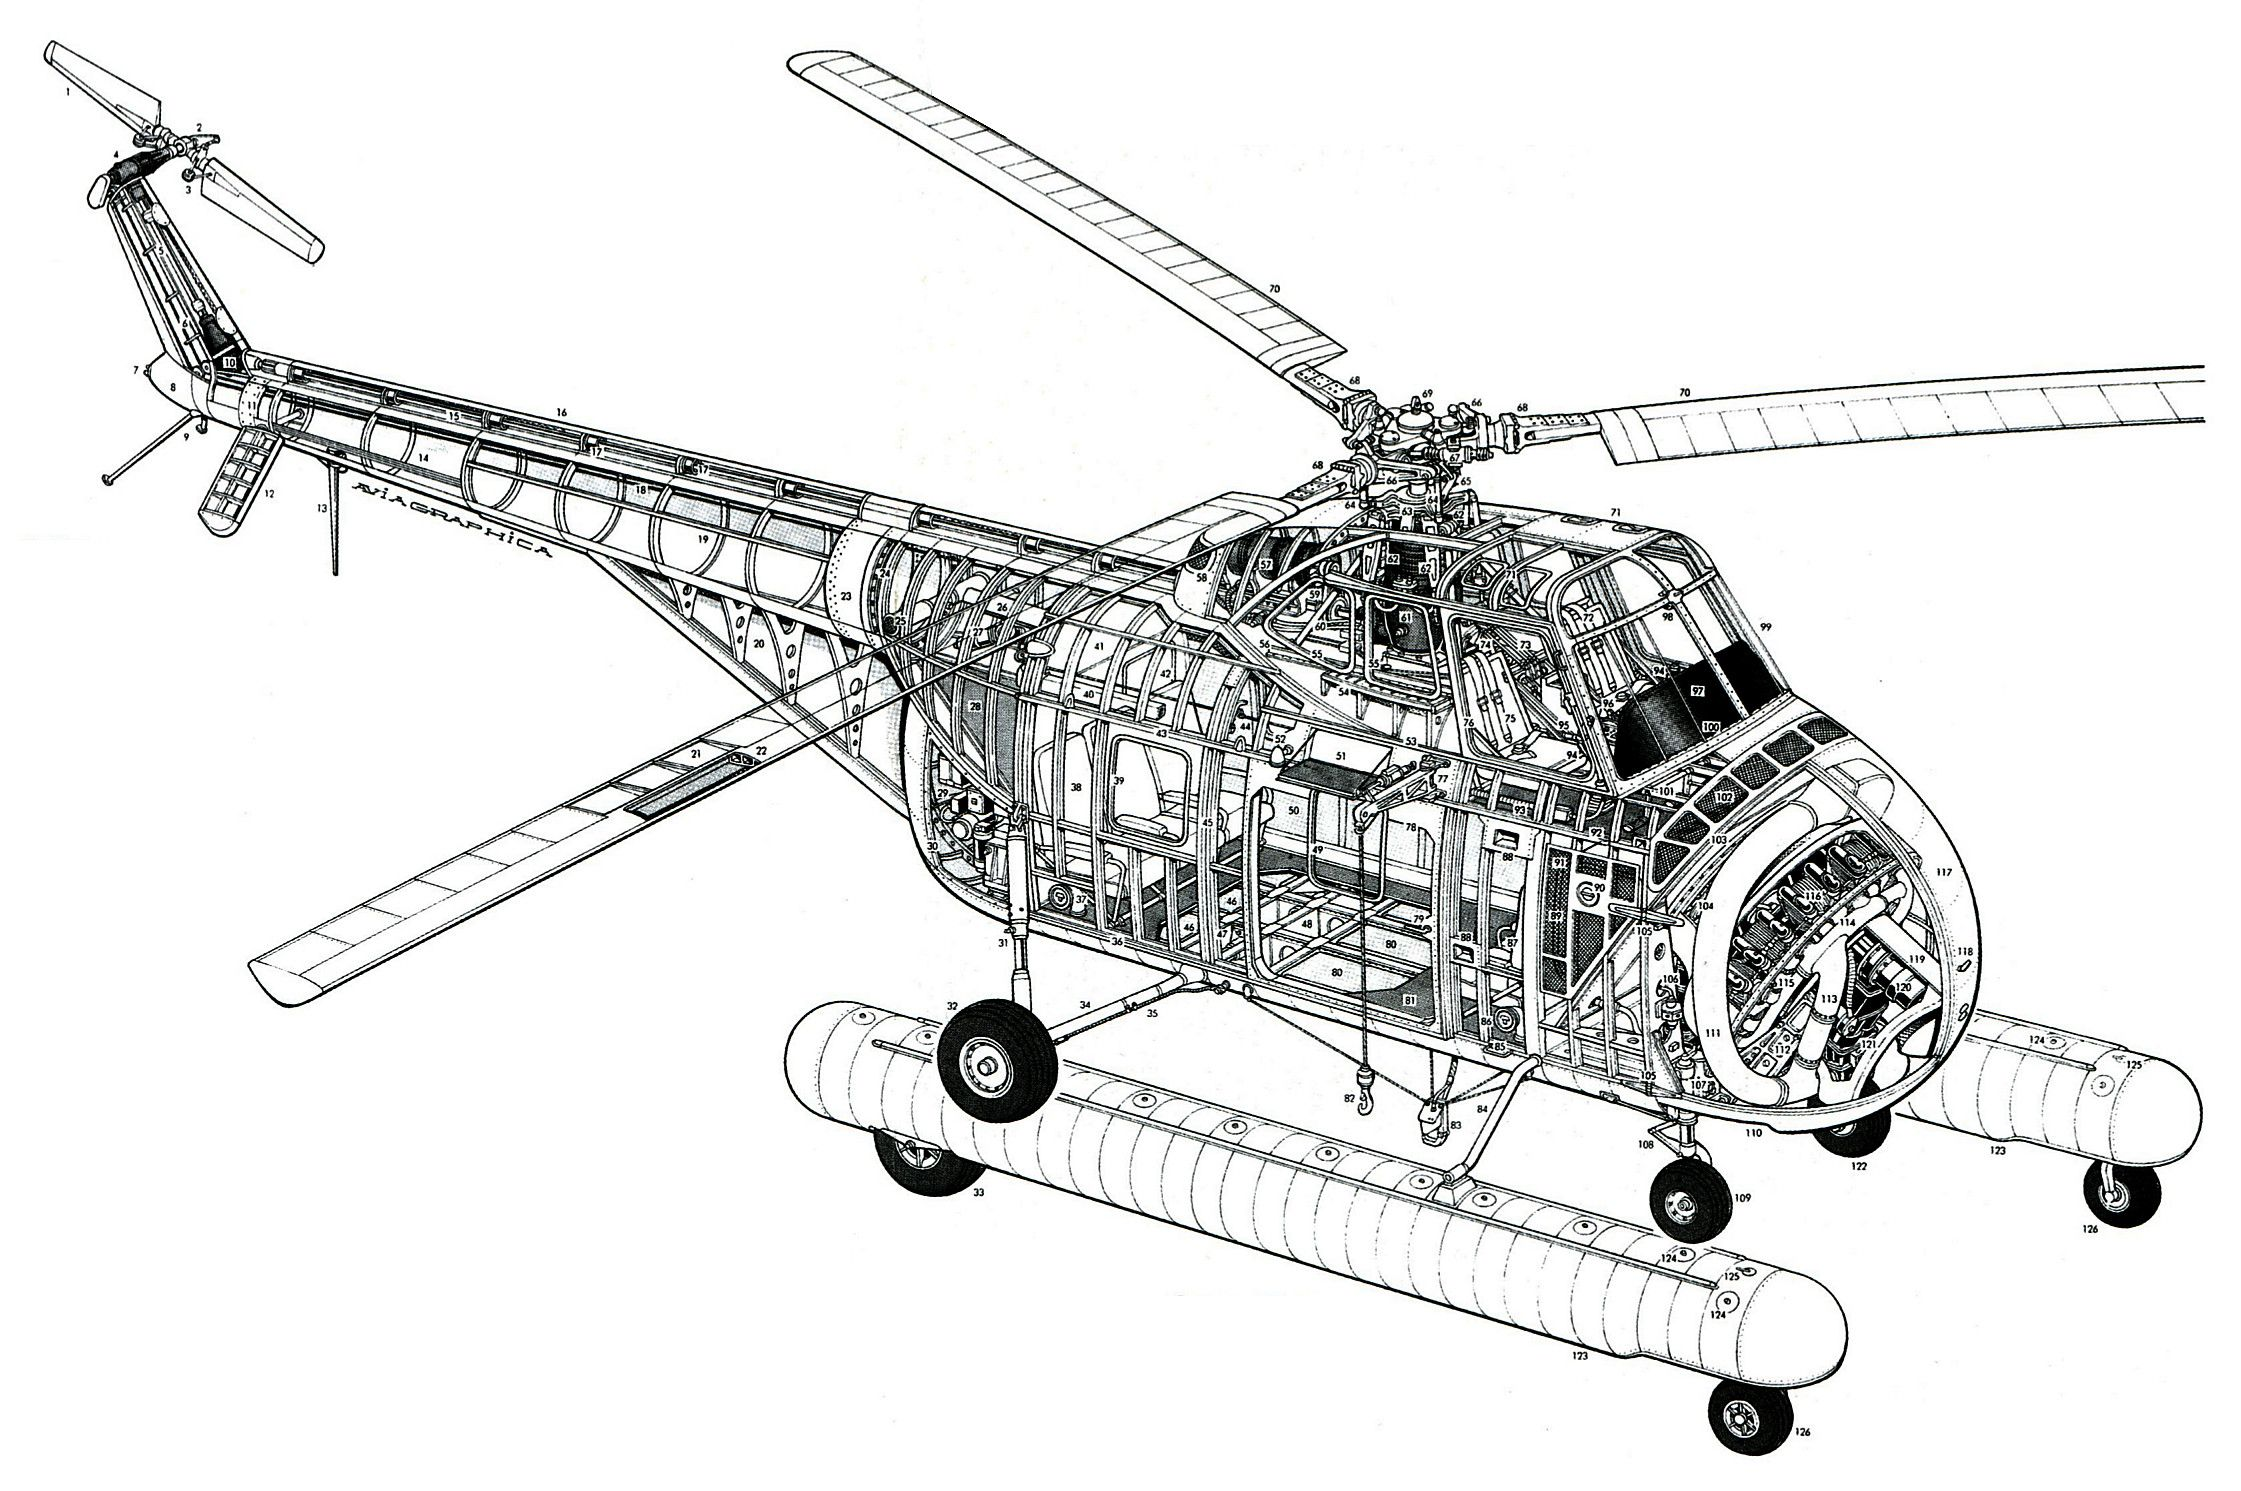 http://references.charlyecho.com/Aviation/Sikorsky/S-55